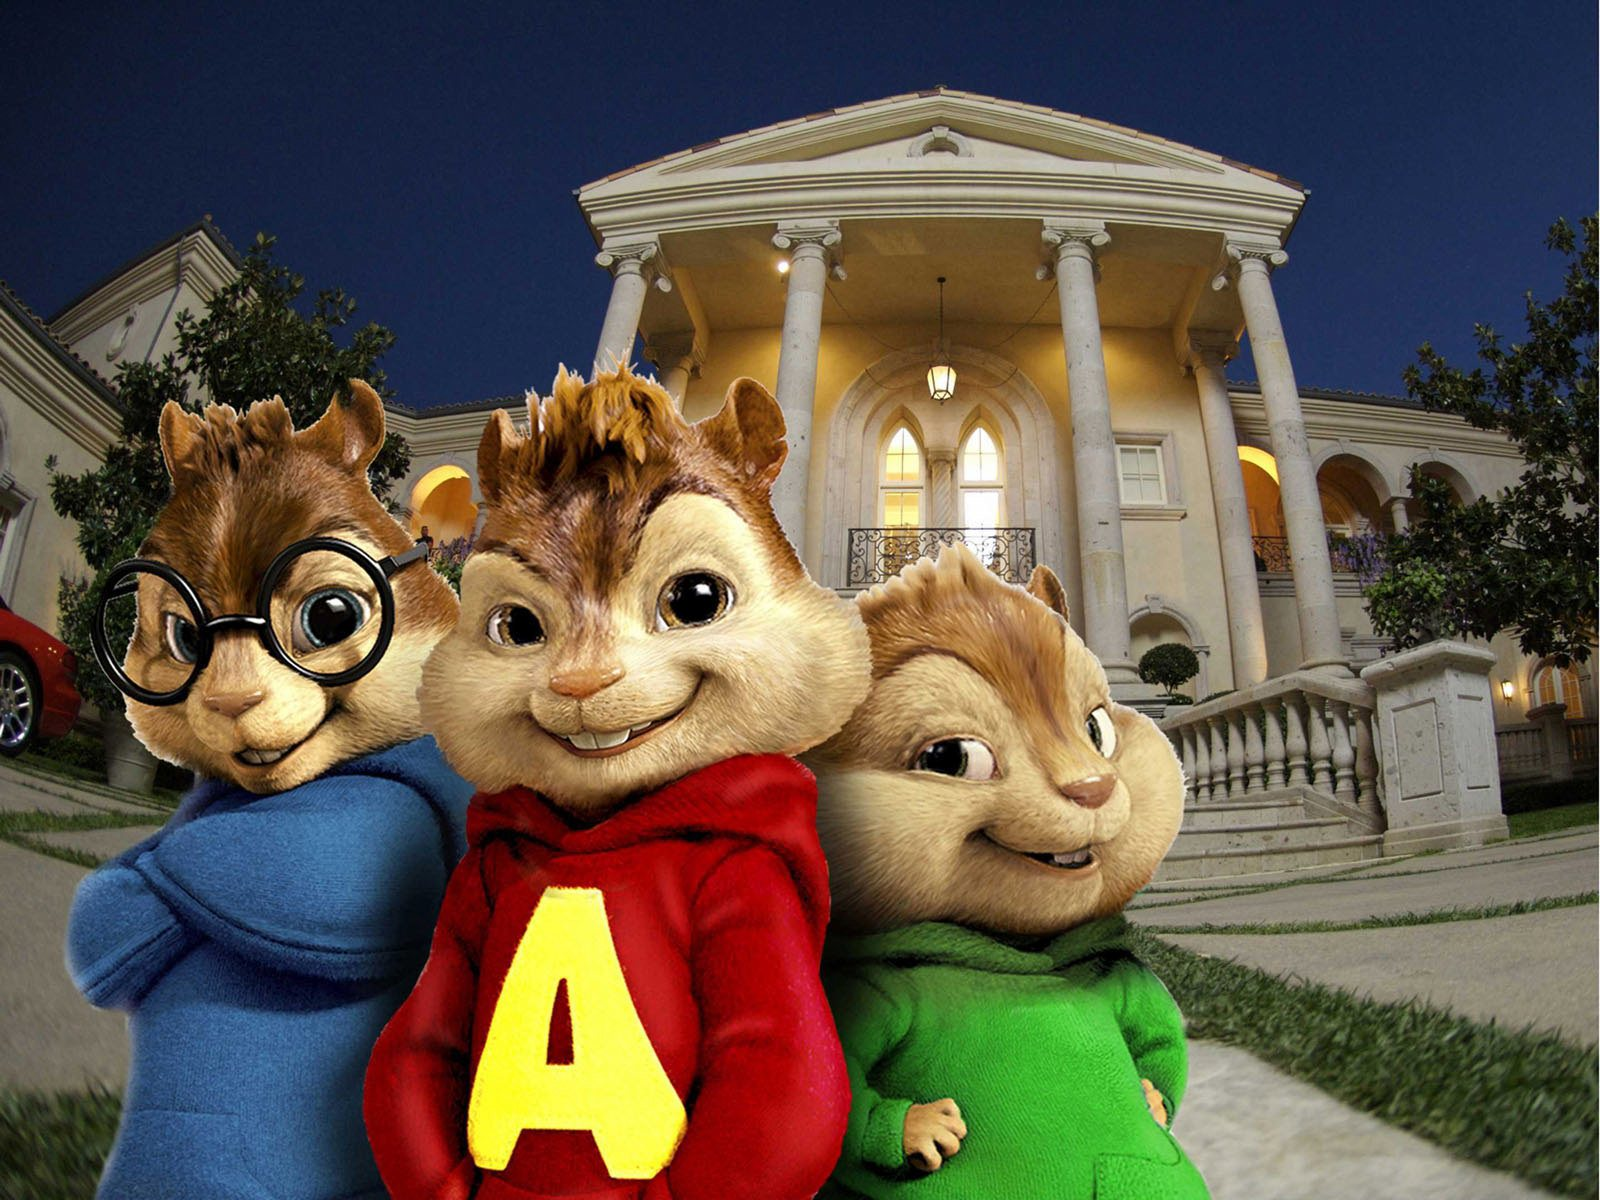 Wallpaper Hd Animals Wallpaper Pack Alvin And The Chipmunks Wallpapers